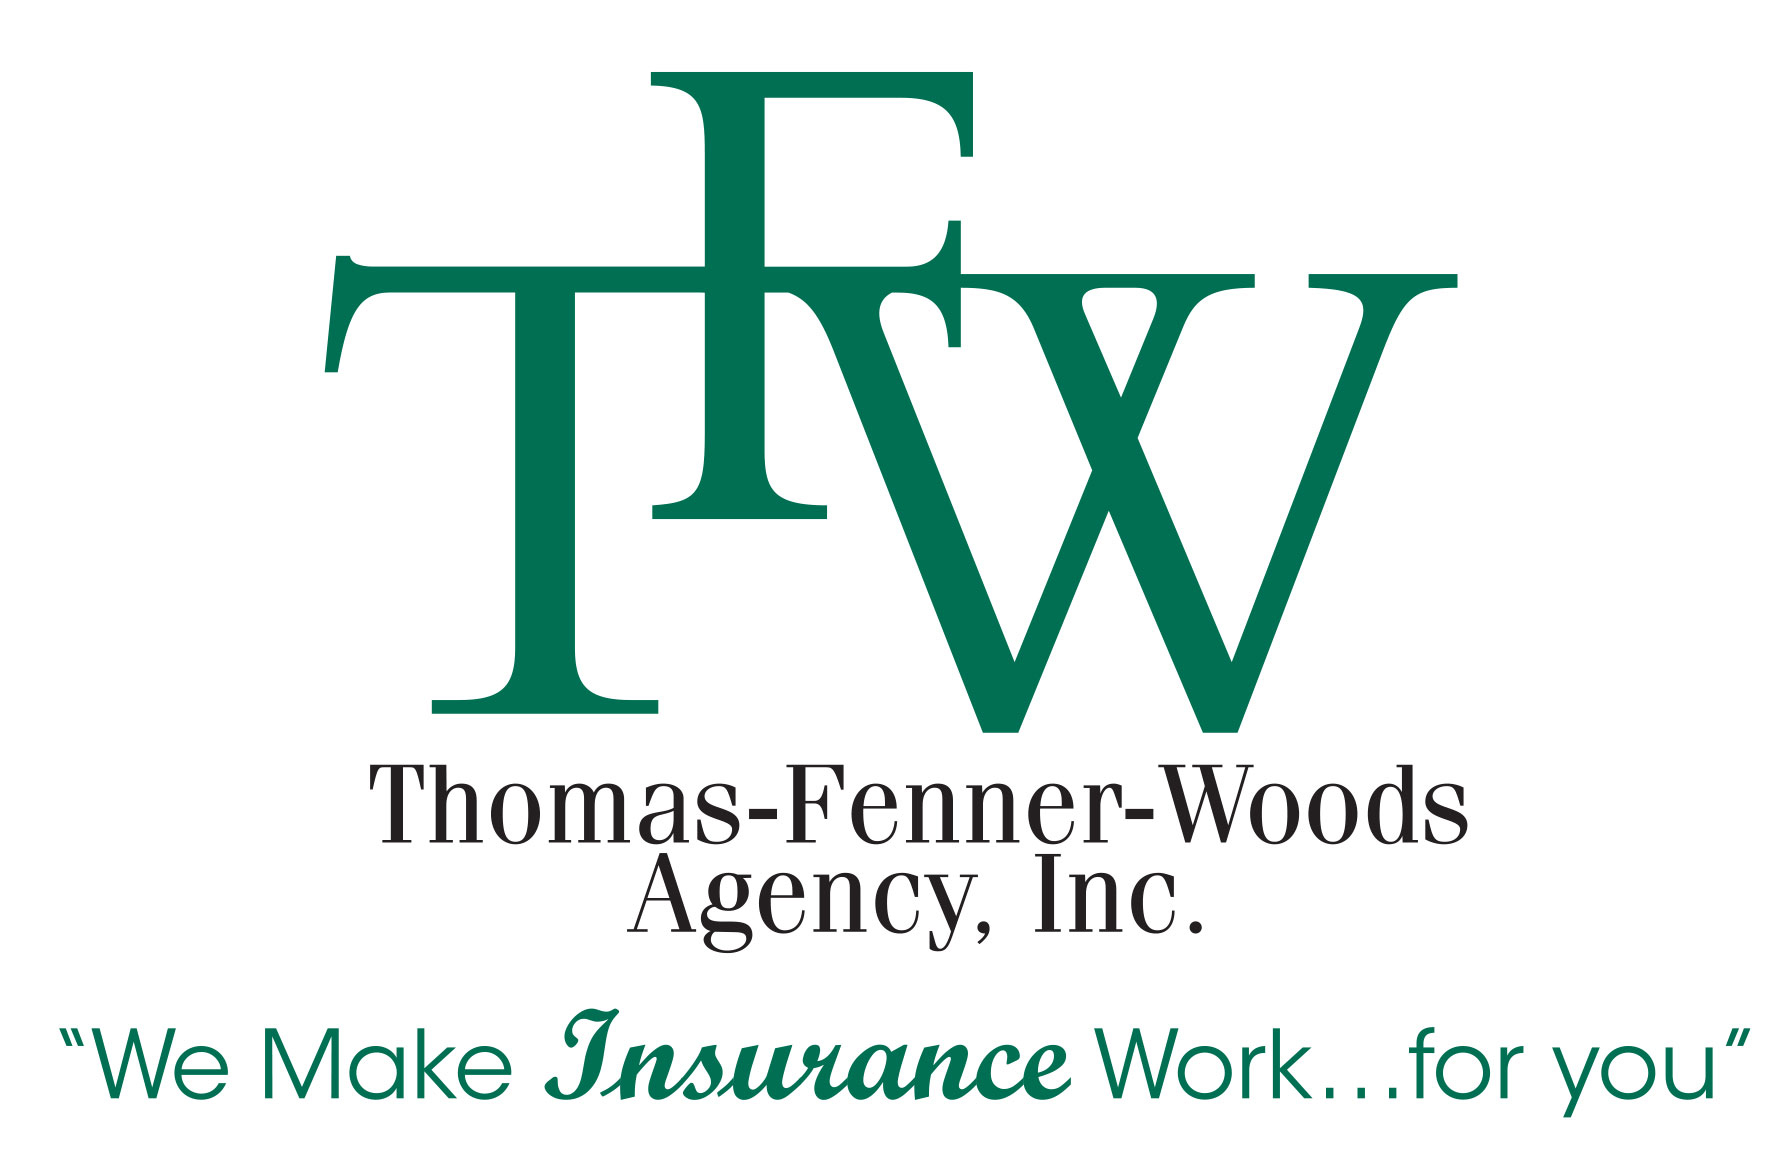 Thomas Fenner Woods